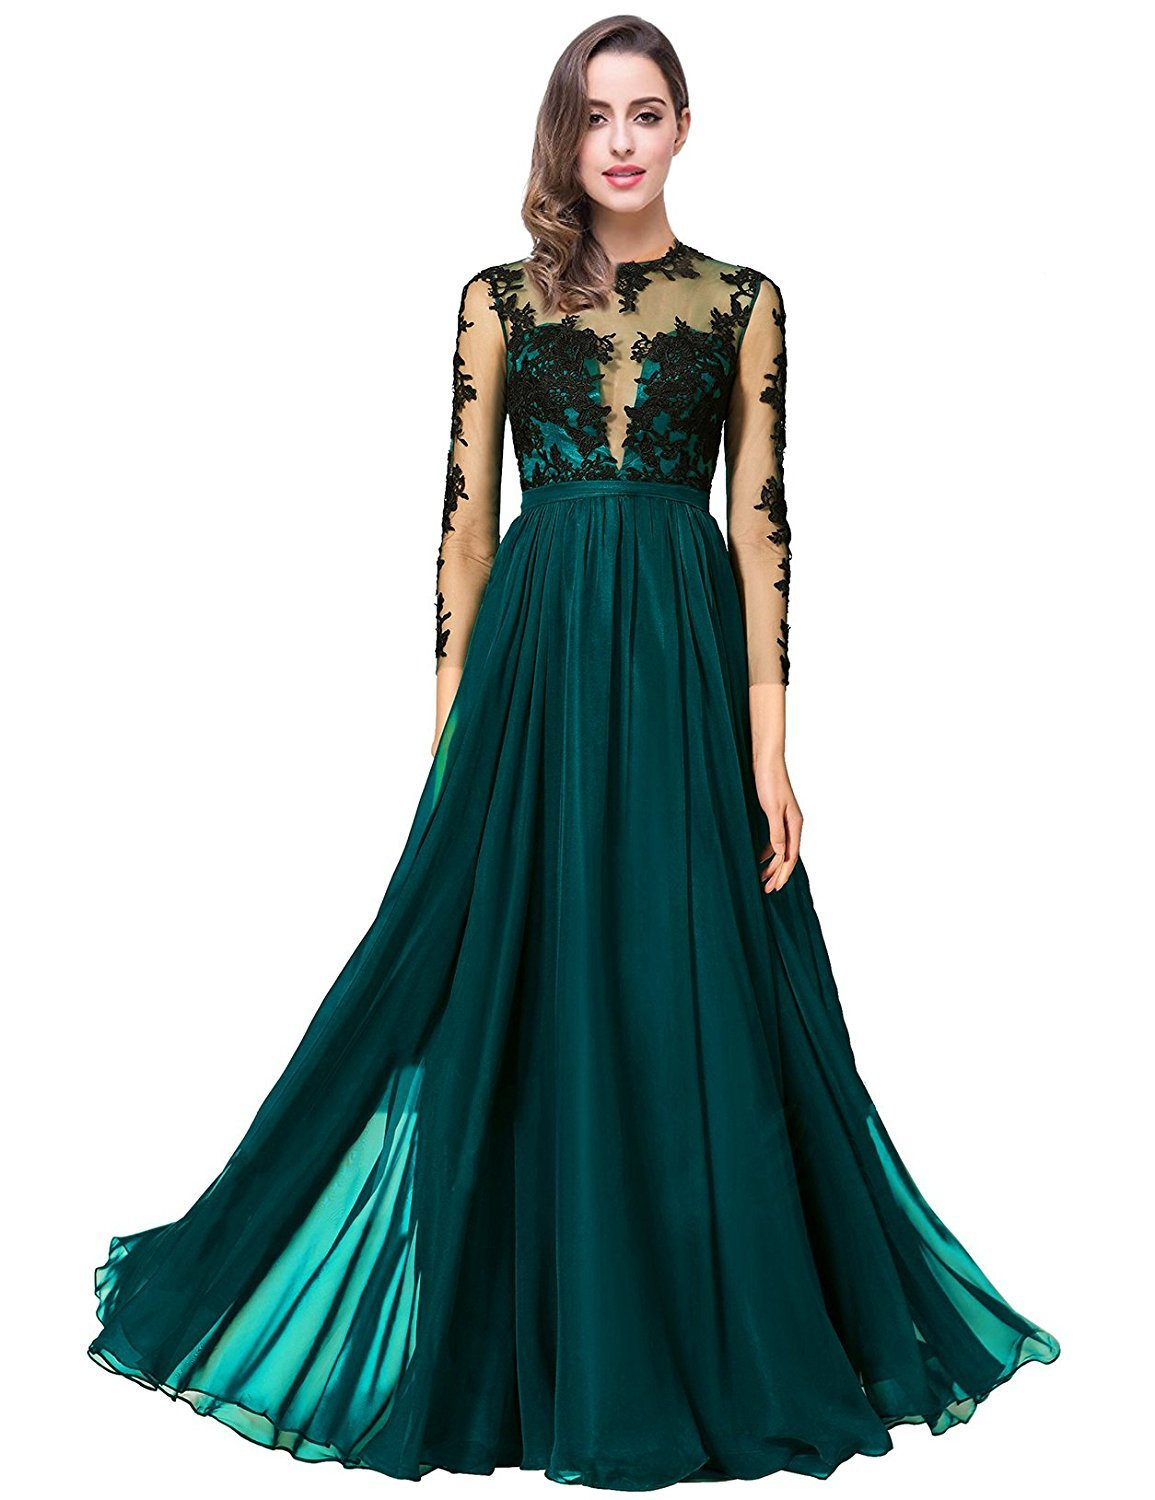 Primary image for Women's Chiffon Bridesmaid Dress Lace Long Sleeves Formal Evening Party Gowns